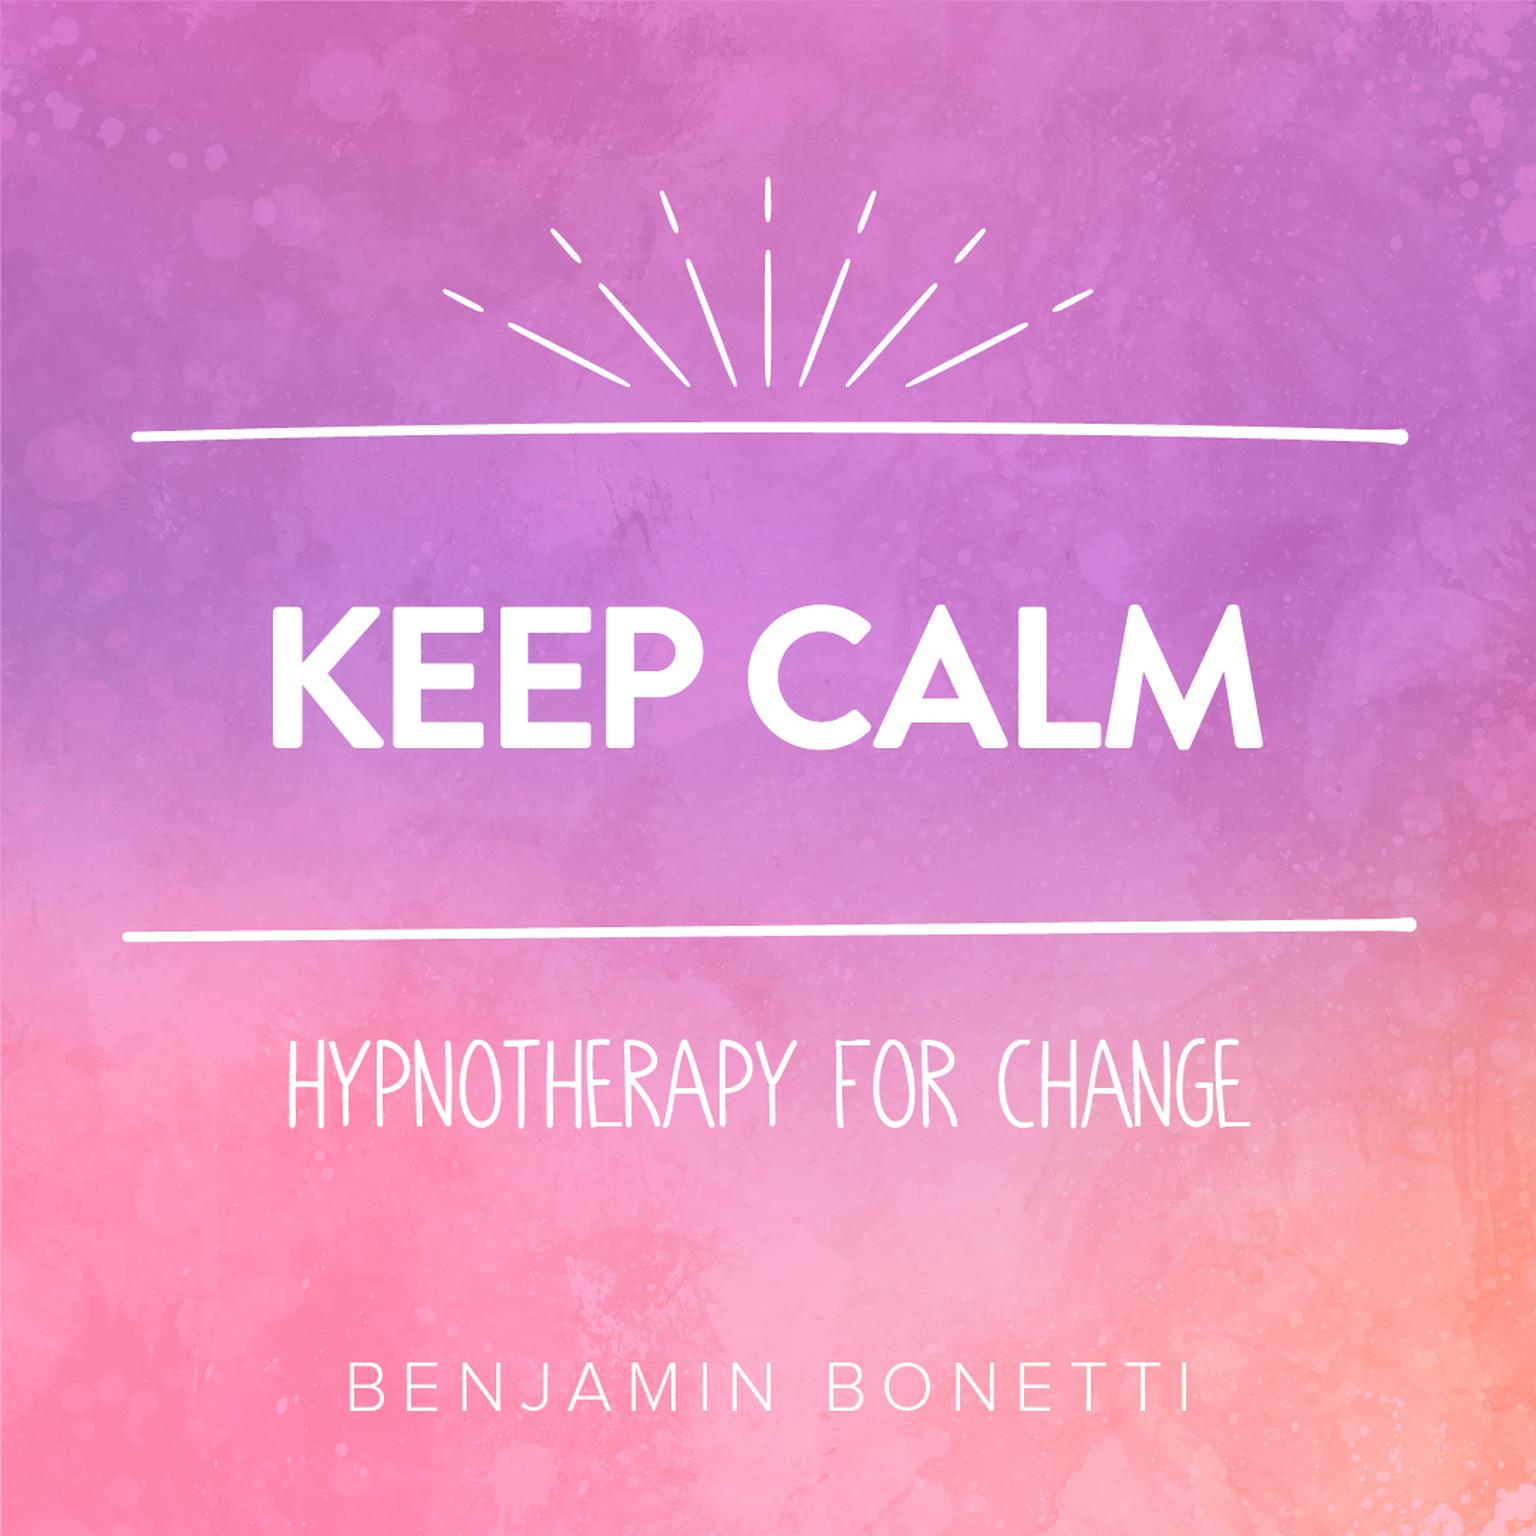 Printable Keep Calm - Hypnotherapy For Change Audiobook Cover Art